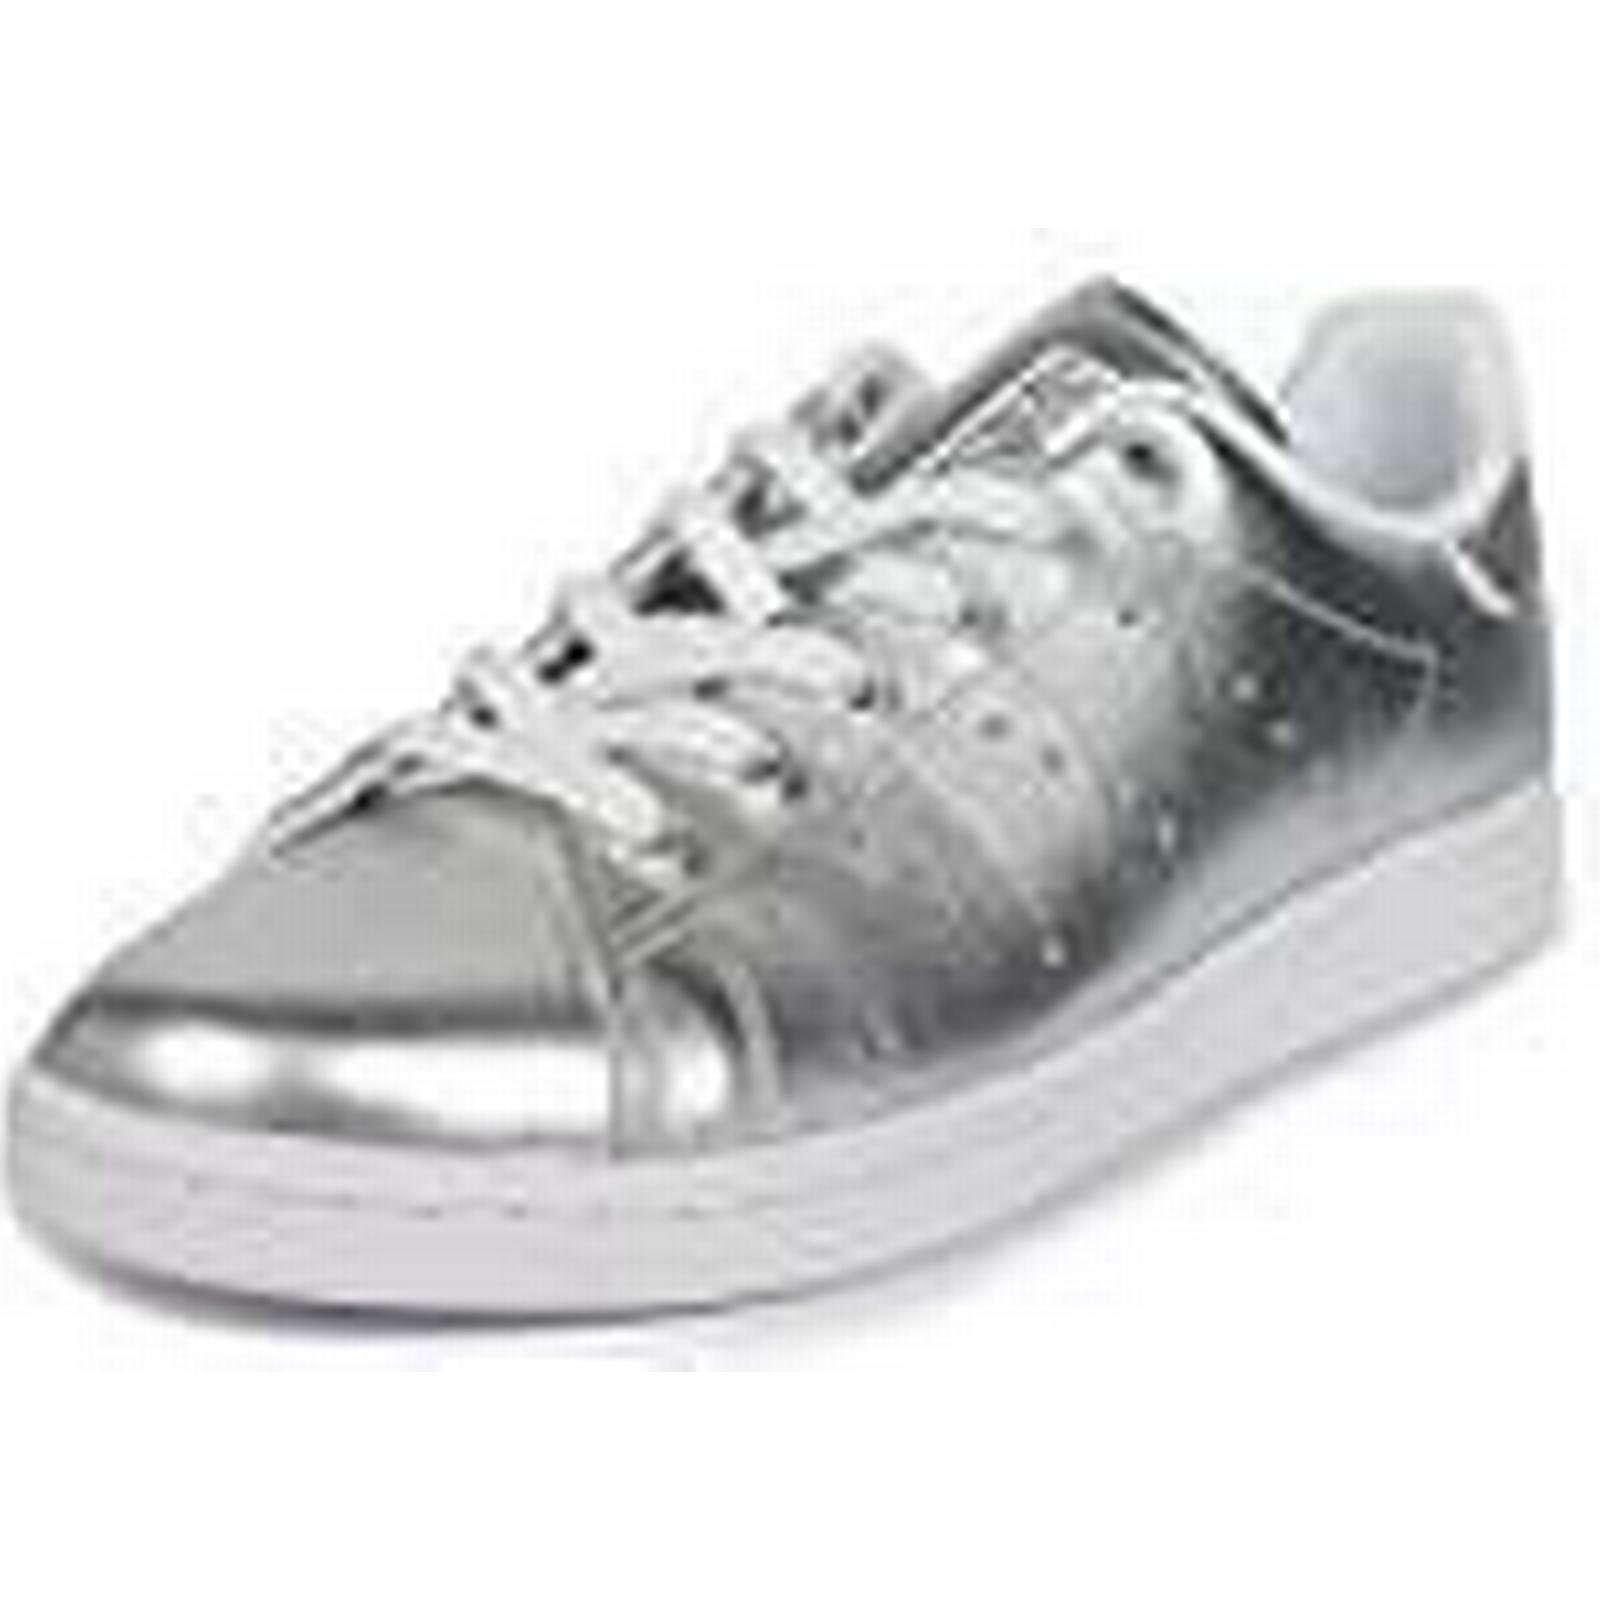 new style 438f1 390bb 2b2da cc58c  low cost adidas trainers womens stan smith ba7662 trainers  adidas silver white size 6.5 891735 899aa